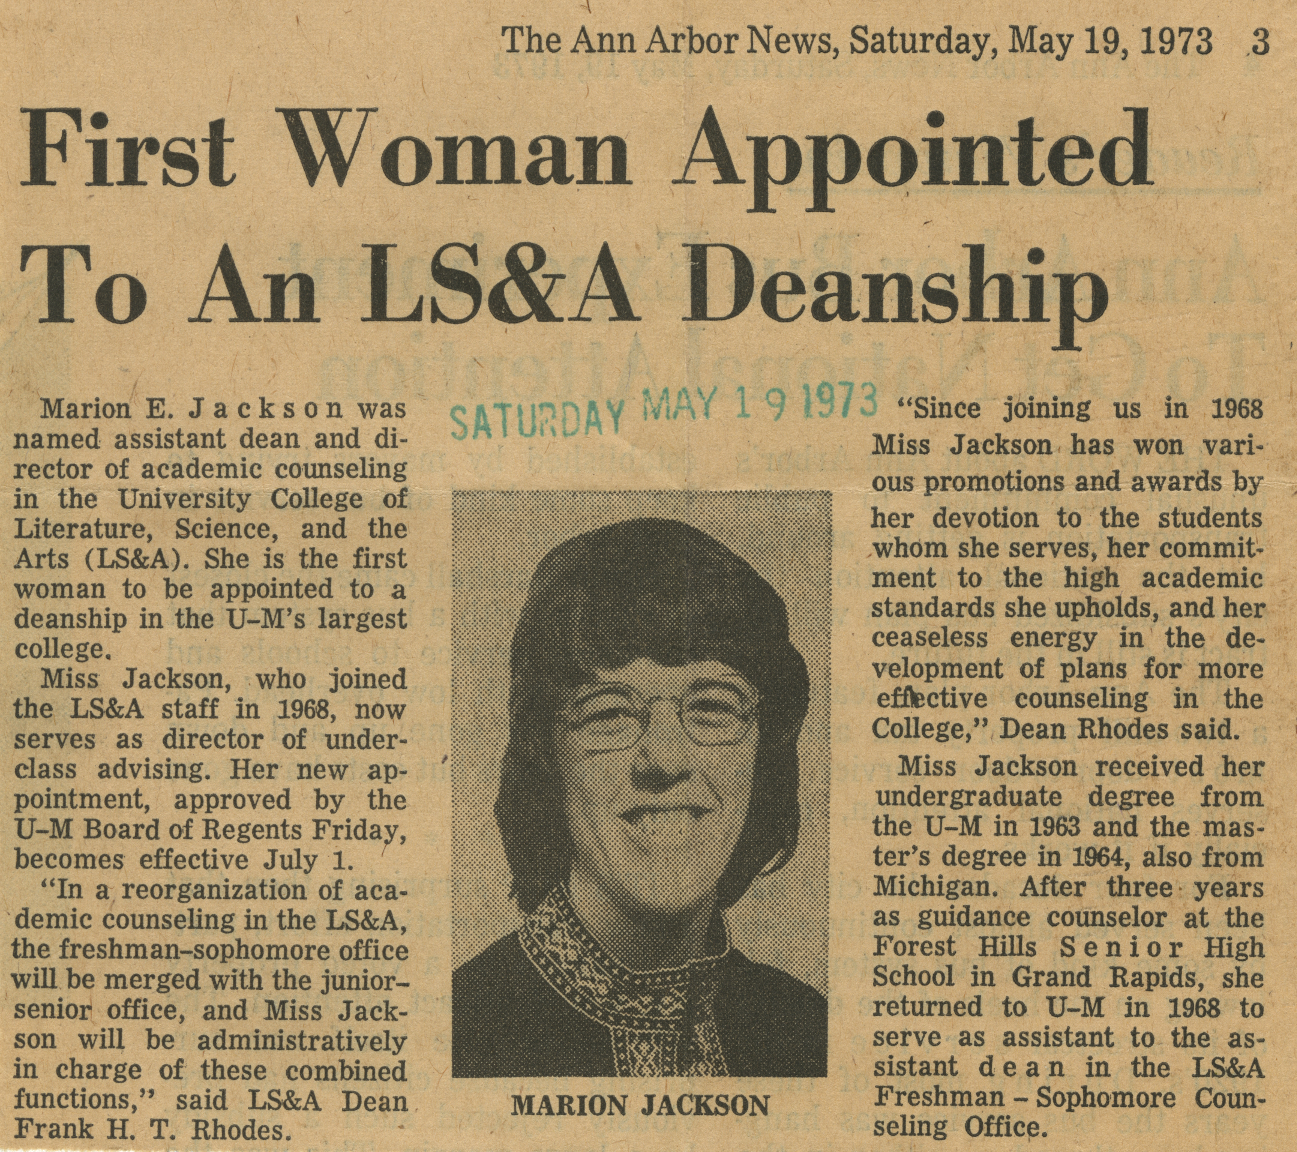 First Woman Appointed To An LS&A Deanship image